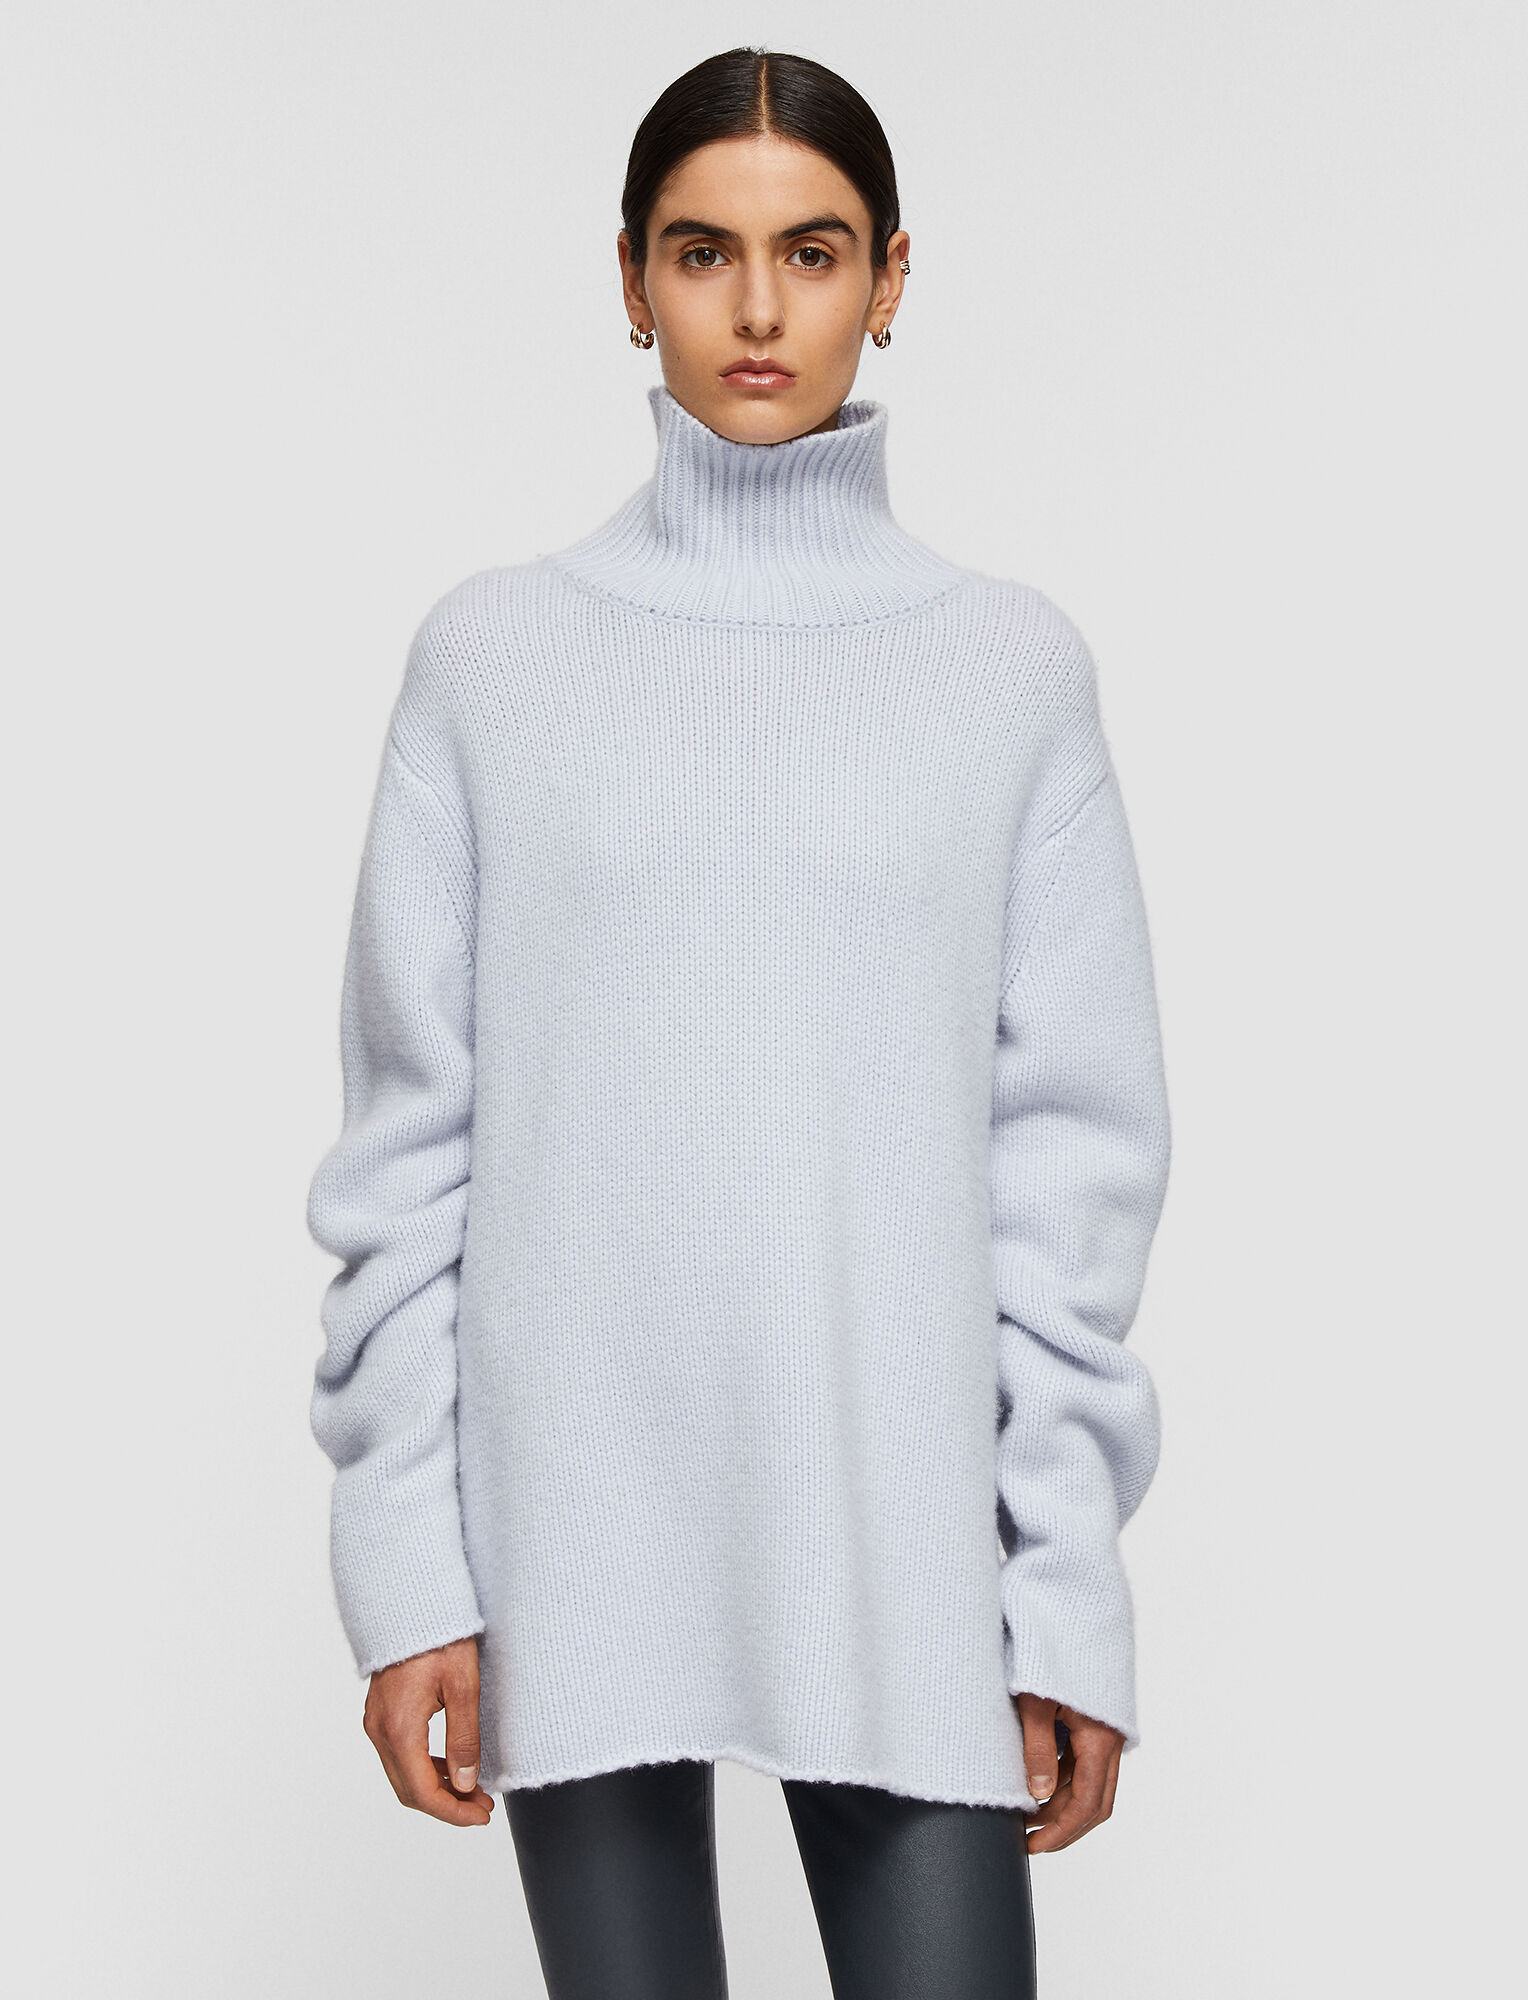 Luxe Cashmere High Neck Jumper by JOSEPH FASHION